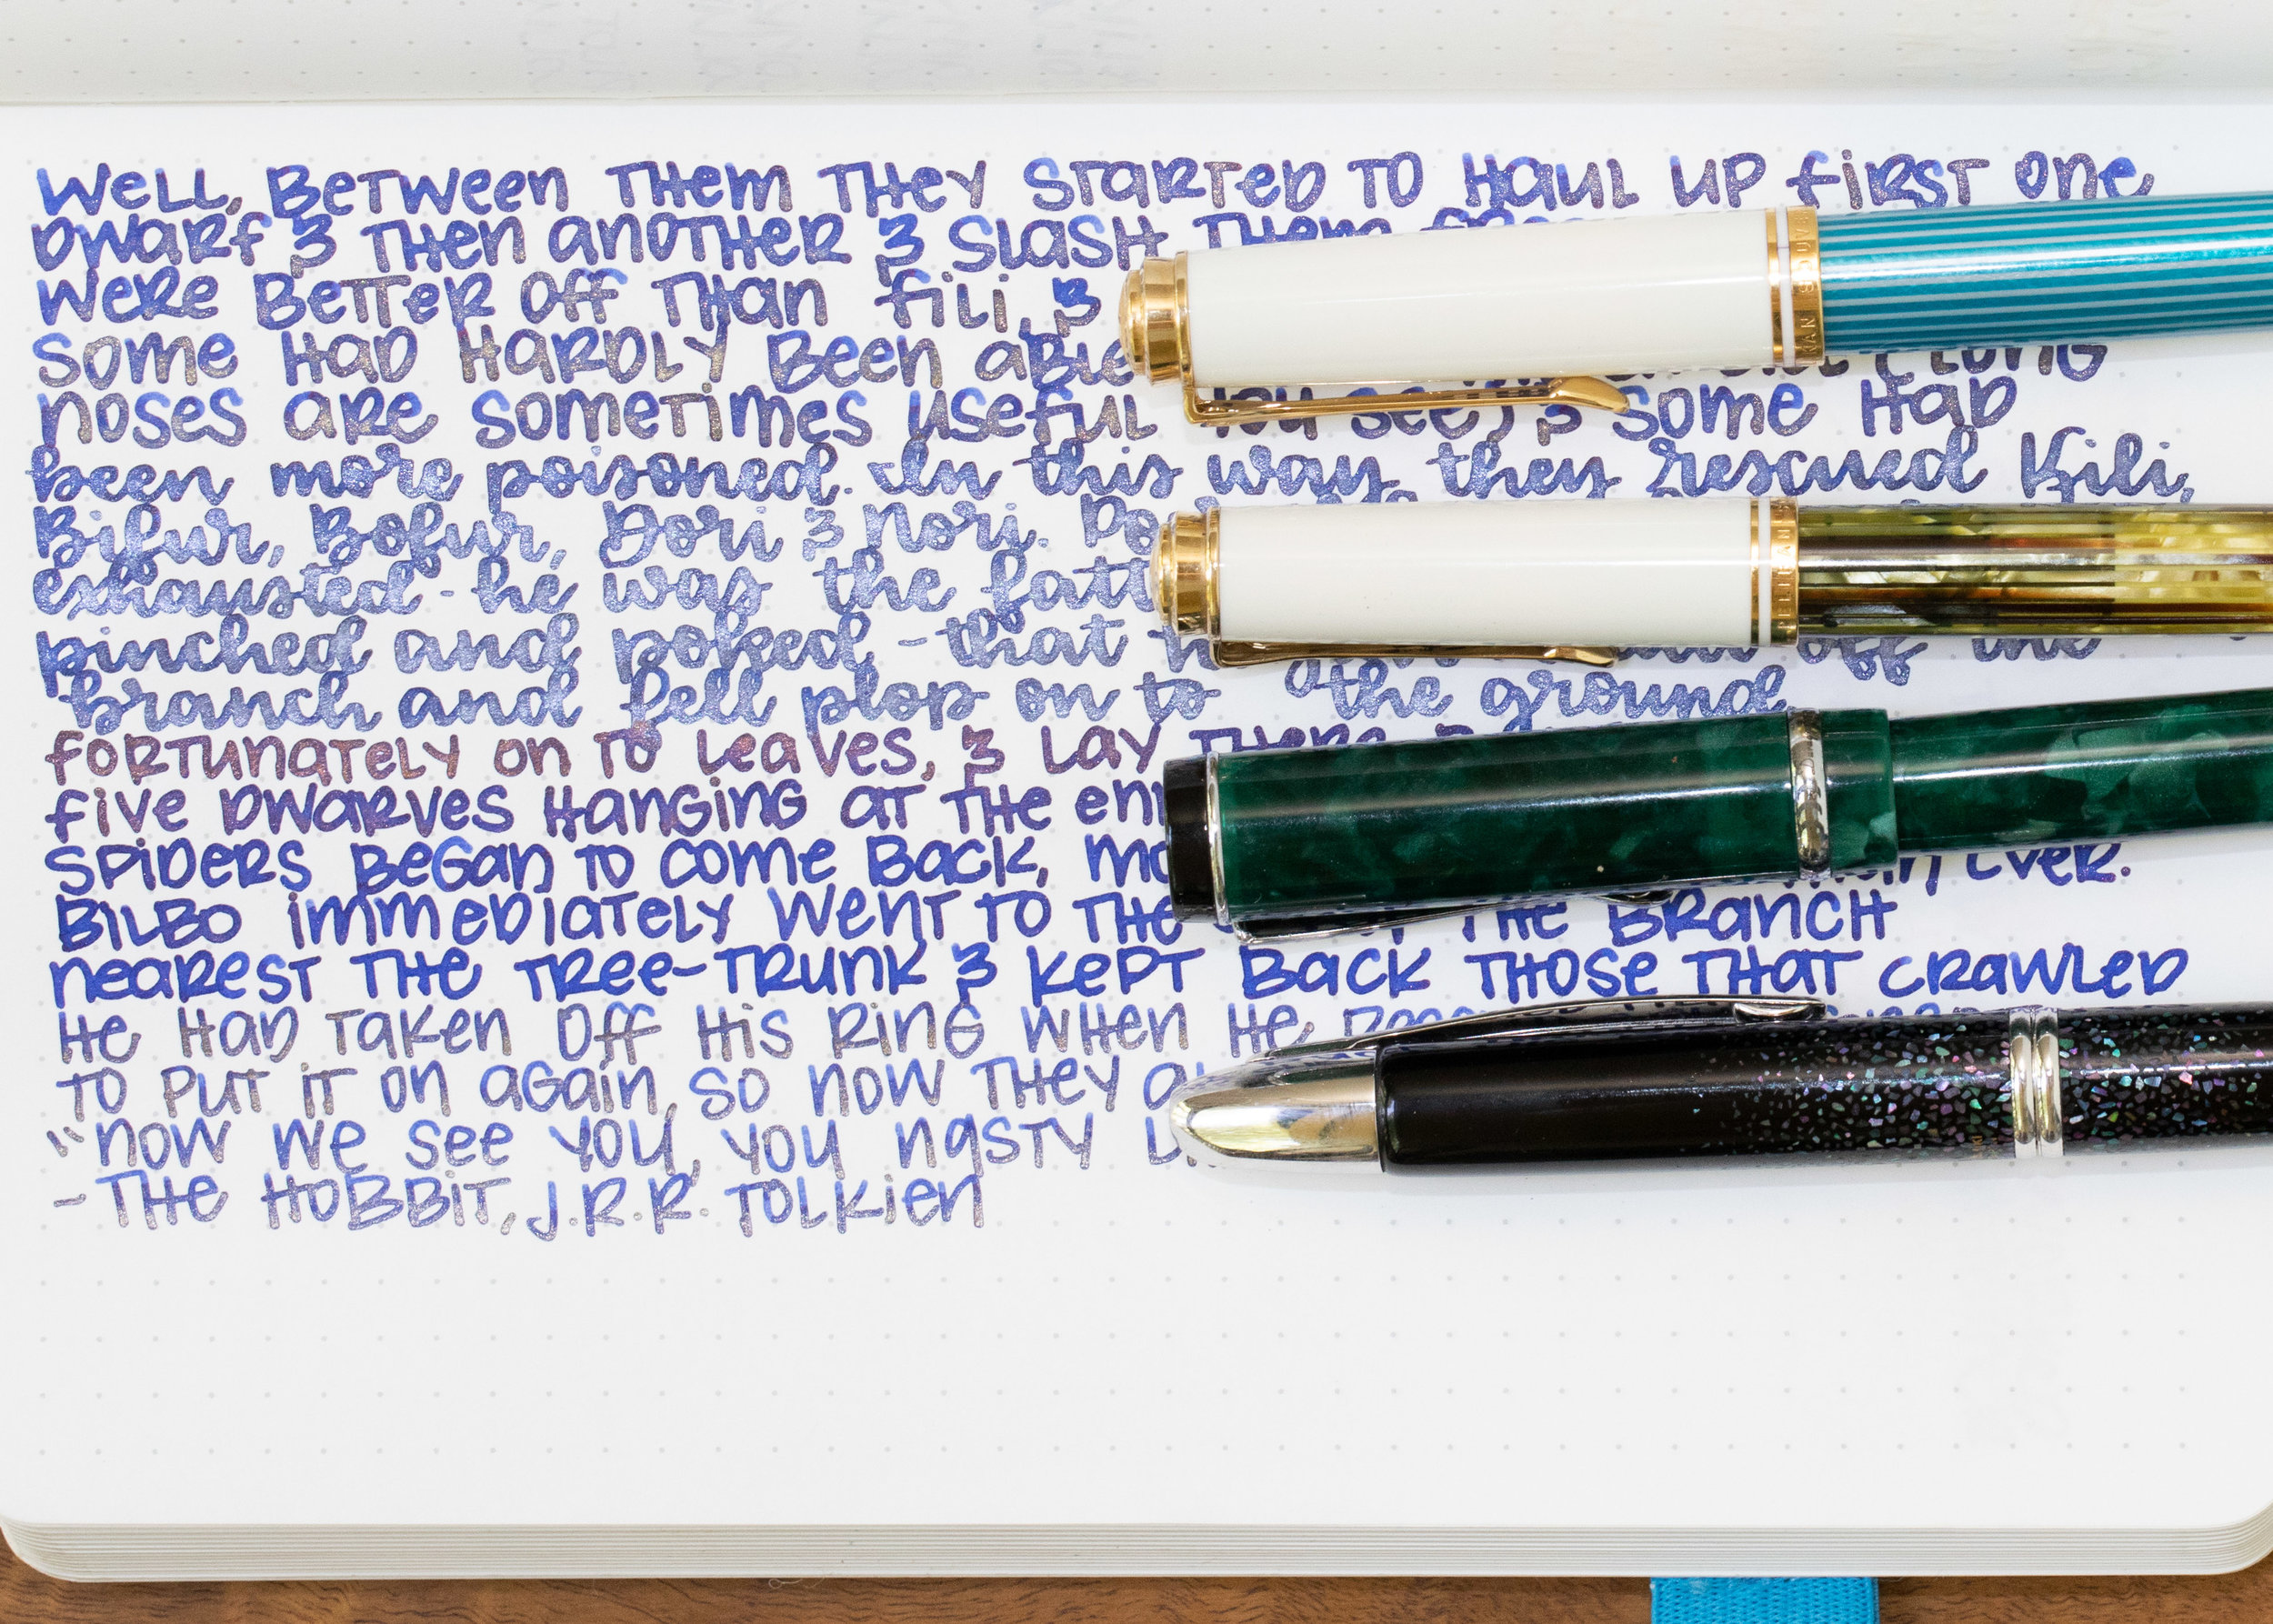 I used a broad Pelikan M600 Turquoise with the Gold version, a Pelikan M400 White Tortoise with a vintage 400N nib with the Silver version, a broad Conklin Durograph Forest Green for the Copper version, and a medium Pilot VP Galaxy for the Bronze version. I still think the Silver is my favorite of the four. All had some clogging issues, even with the wet flow. Each nib handled the shimmer a little differently. The Pelikan broad did little spurts of shimmer, the Pelikan 400N nib showed a pretty consistently heavy shimmer, the Conklin had shimmer for the first line, and then no more, and the Pilot medium had a consistent trickle of shimmer.